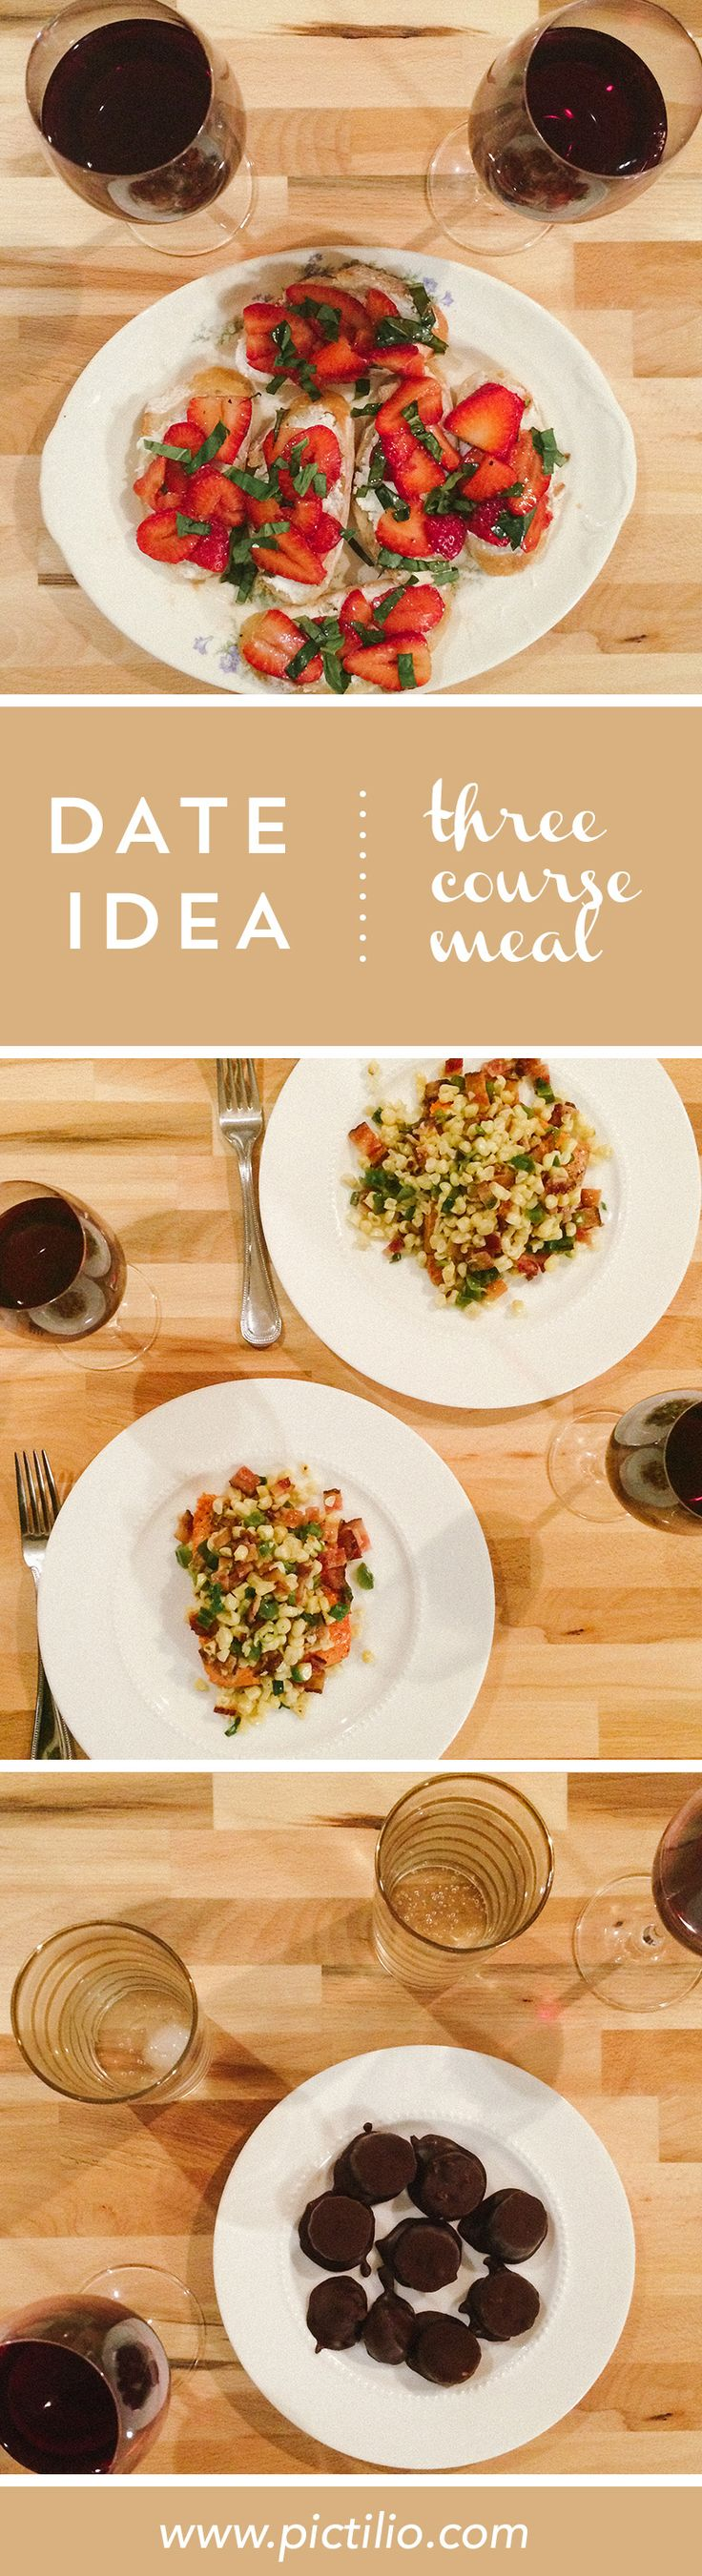 The latest date idea from Pictilio: Three course meal with a dollop of romance